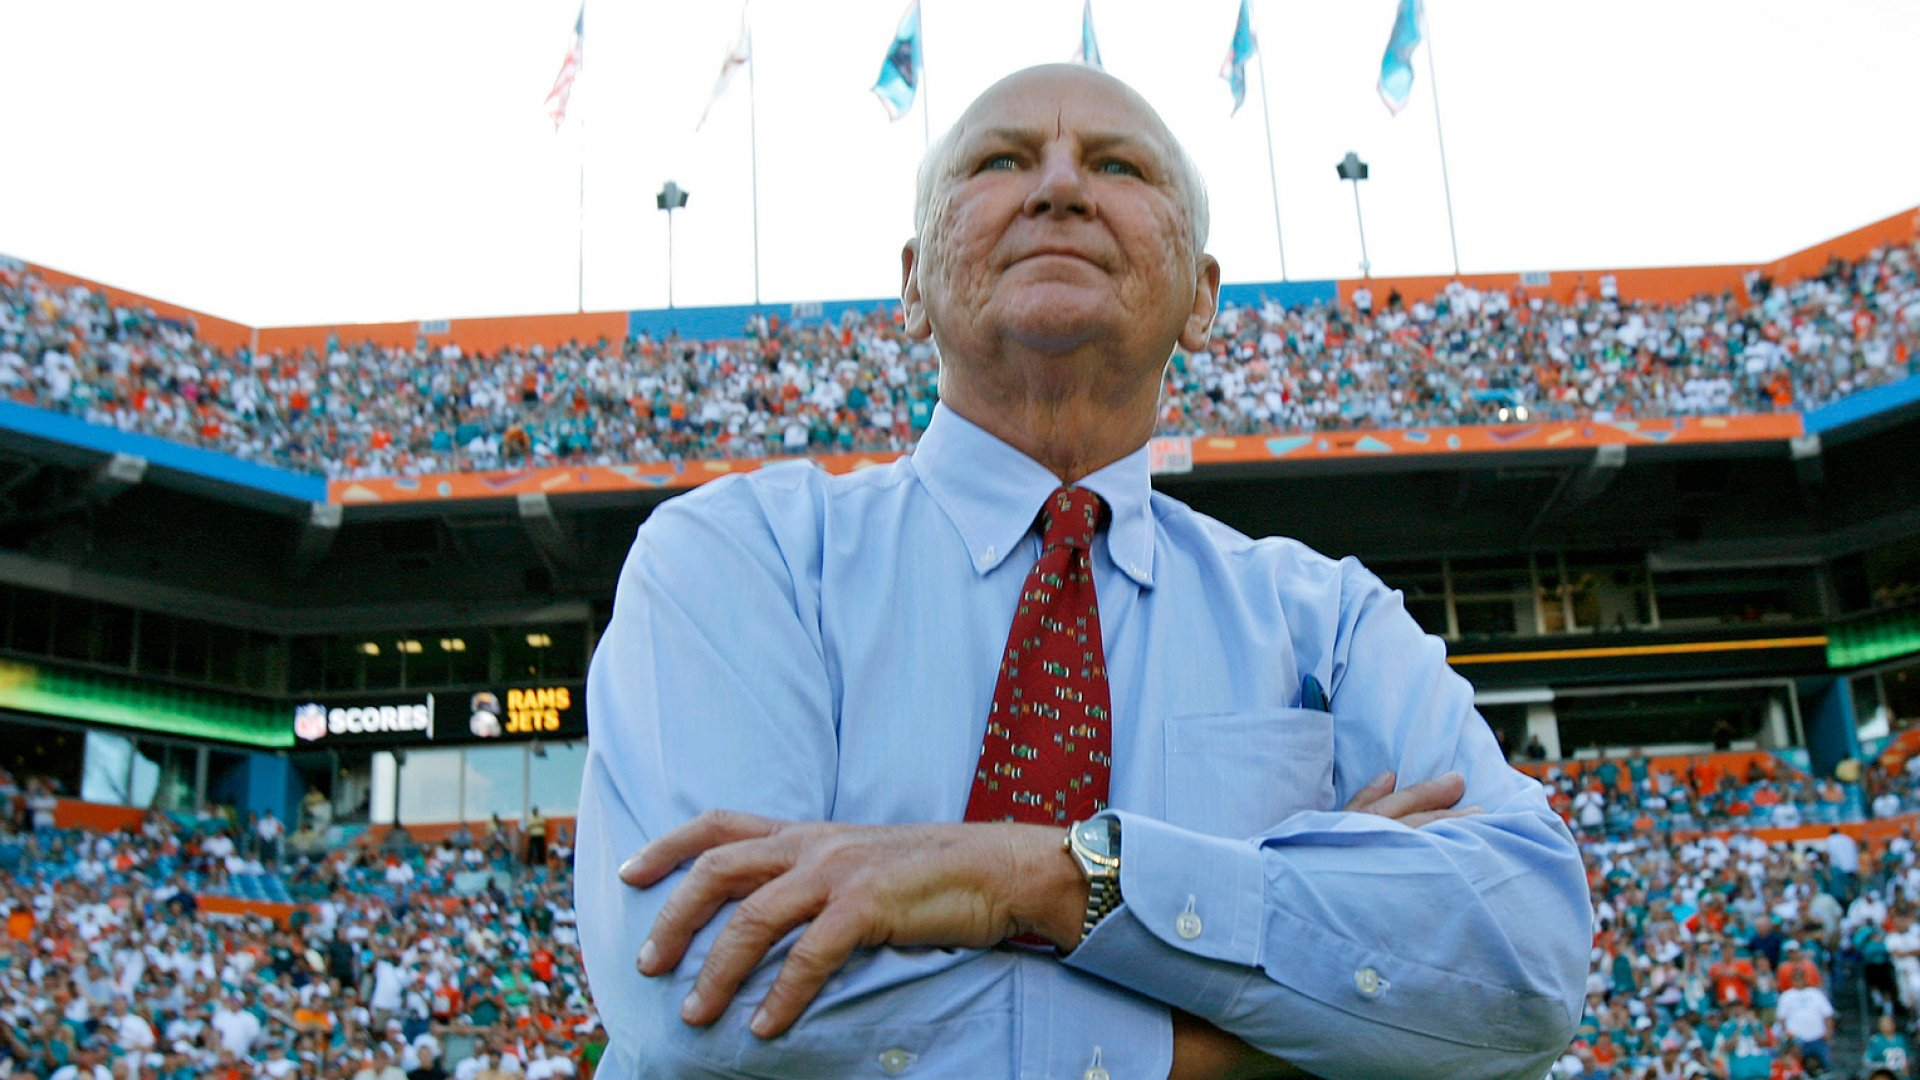 This November 9, 2008, file photo shows H. Wayne Huizenga at Dolphin Stadium in Miami. Huizenga, a college dropout who built a business empire that included Blockbuster Entertainment, AutoNation, and three professional sports franchises, has died. He was 80.